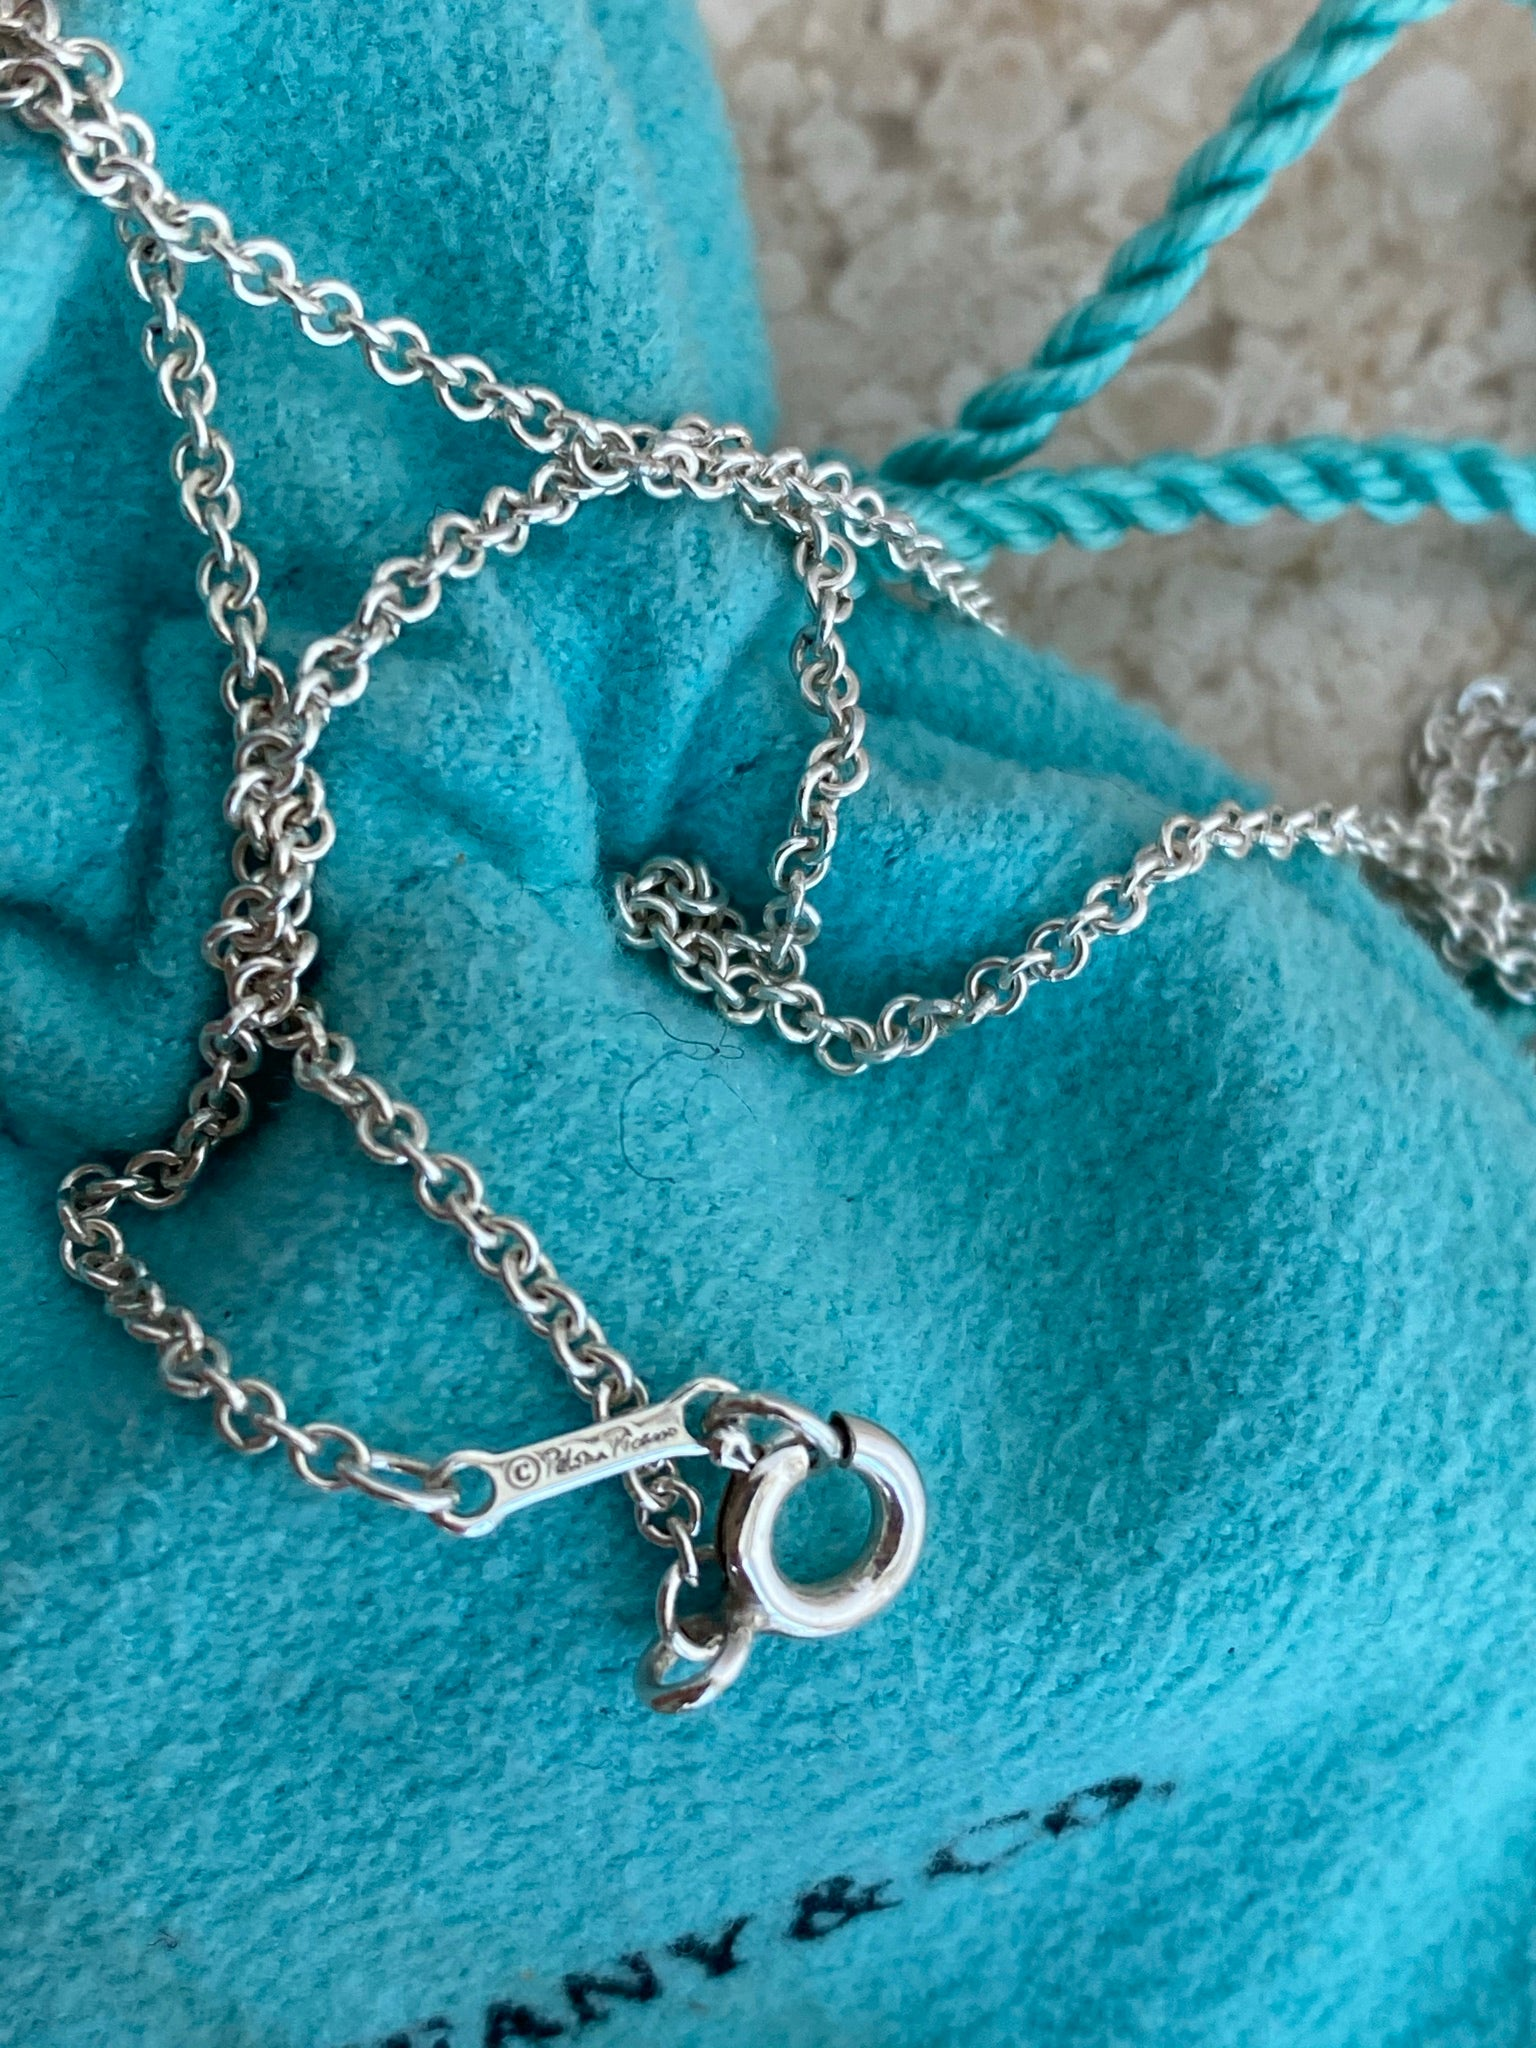 Authentic TIFFANY & CO. Sterling Silver Spiral Pendant/Chain